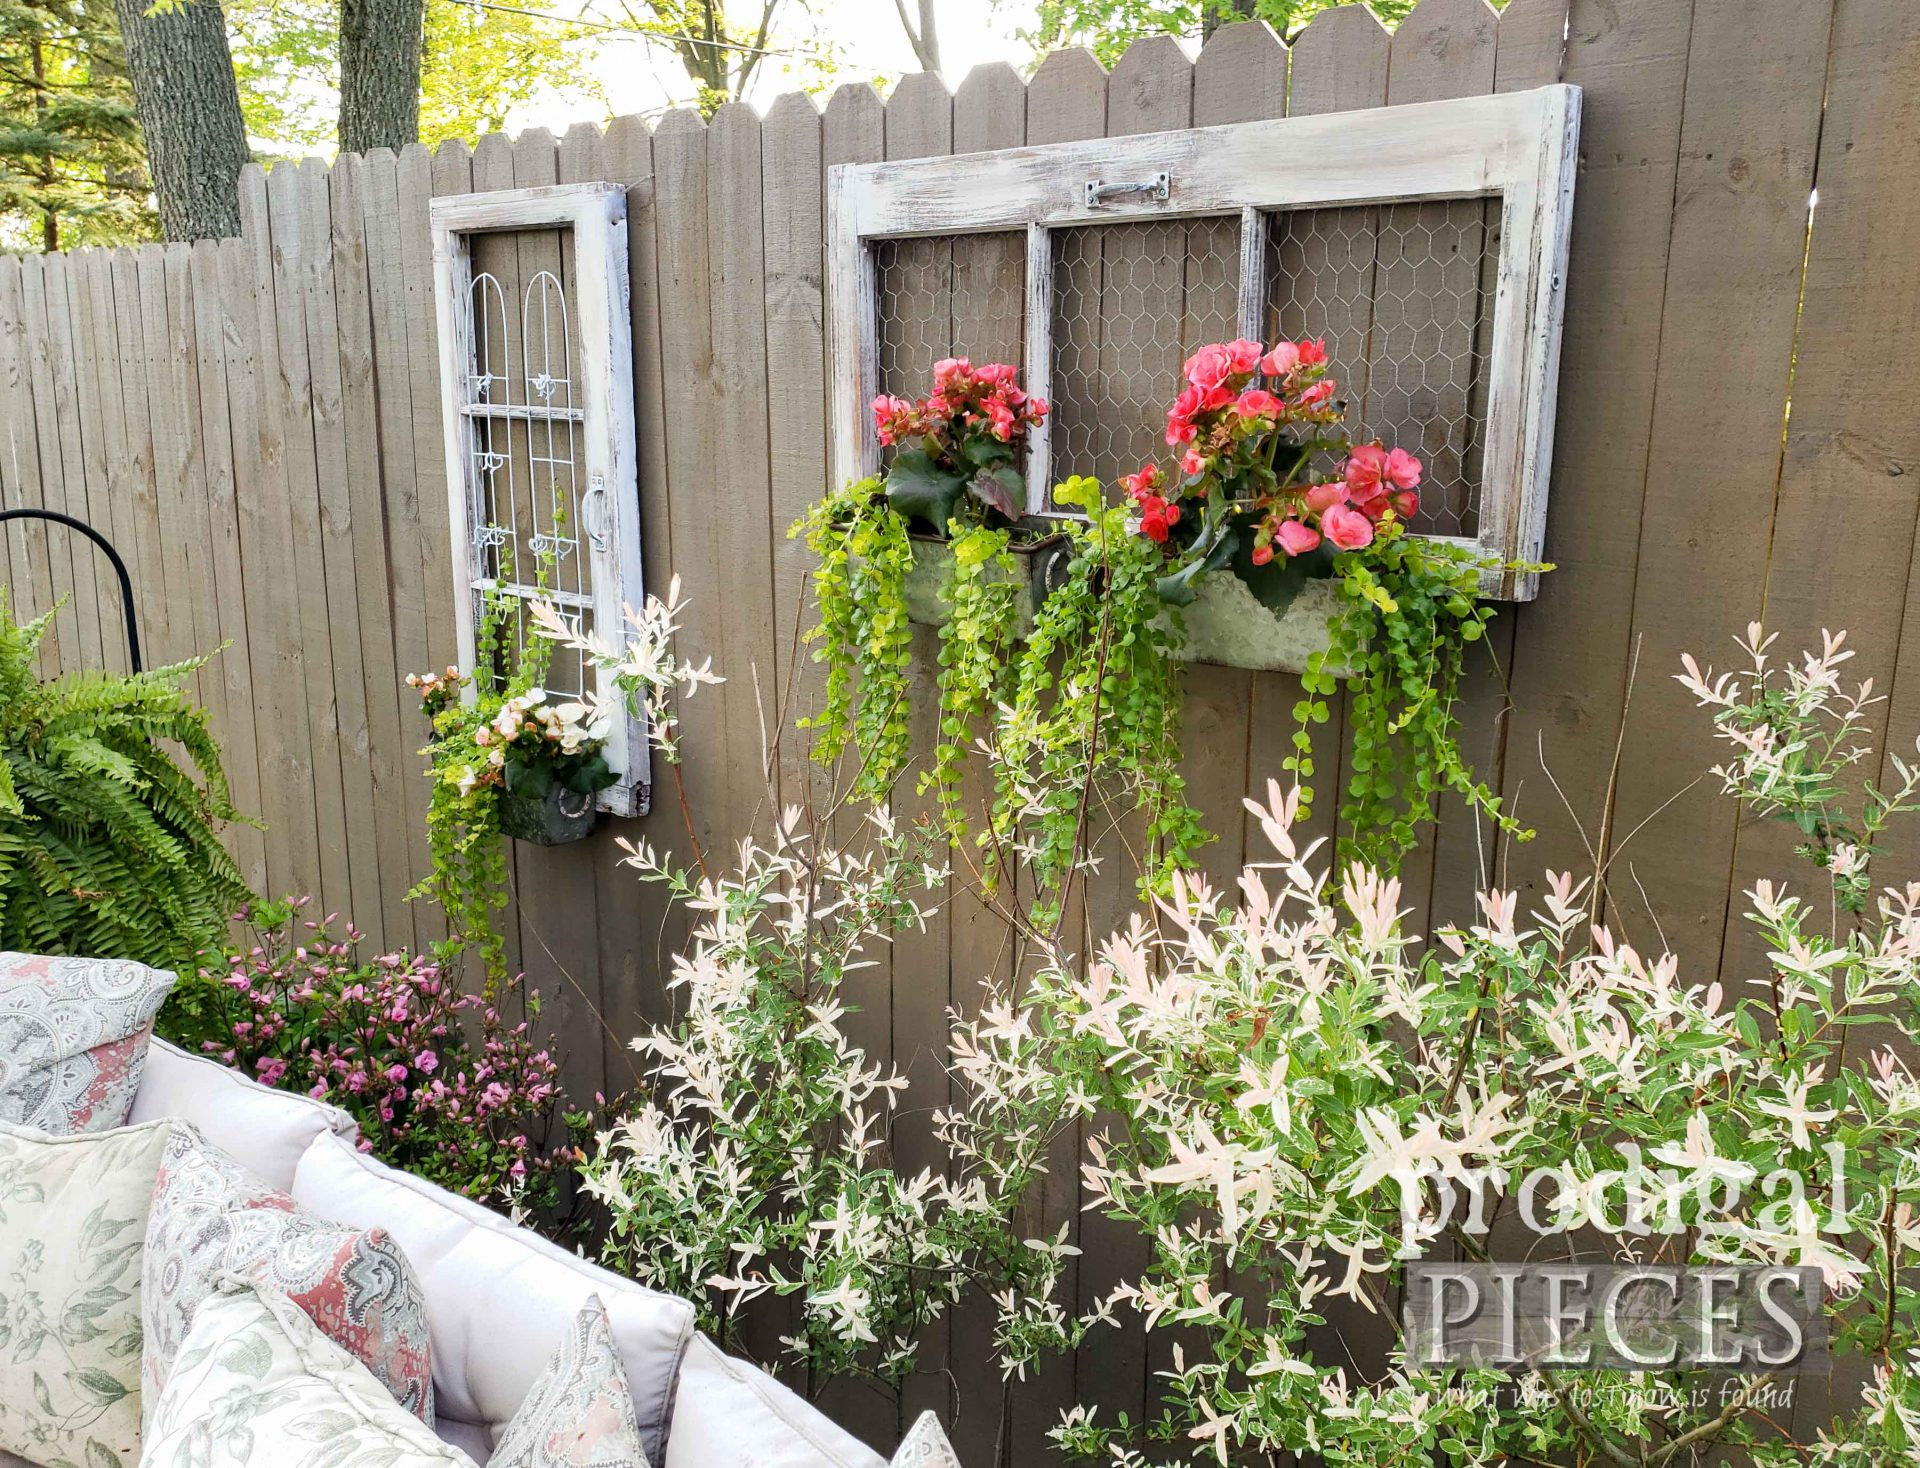 Upcycled Window Planter for Backyard Fence Decor by Larissa of Prodigal Pieces | prodigalpieces.com #prodigalpieces #diy #home #homedecor #garden